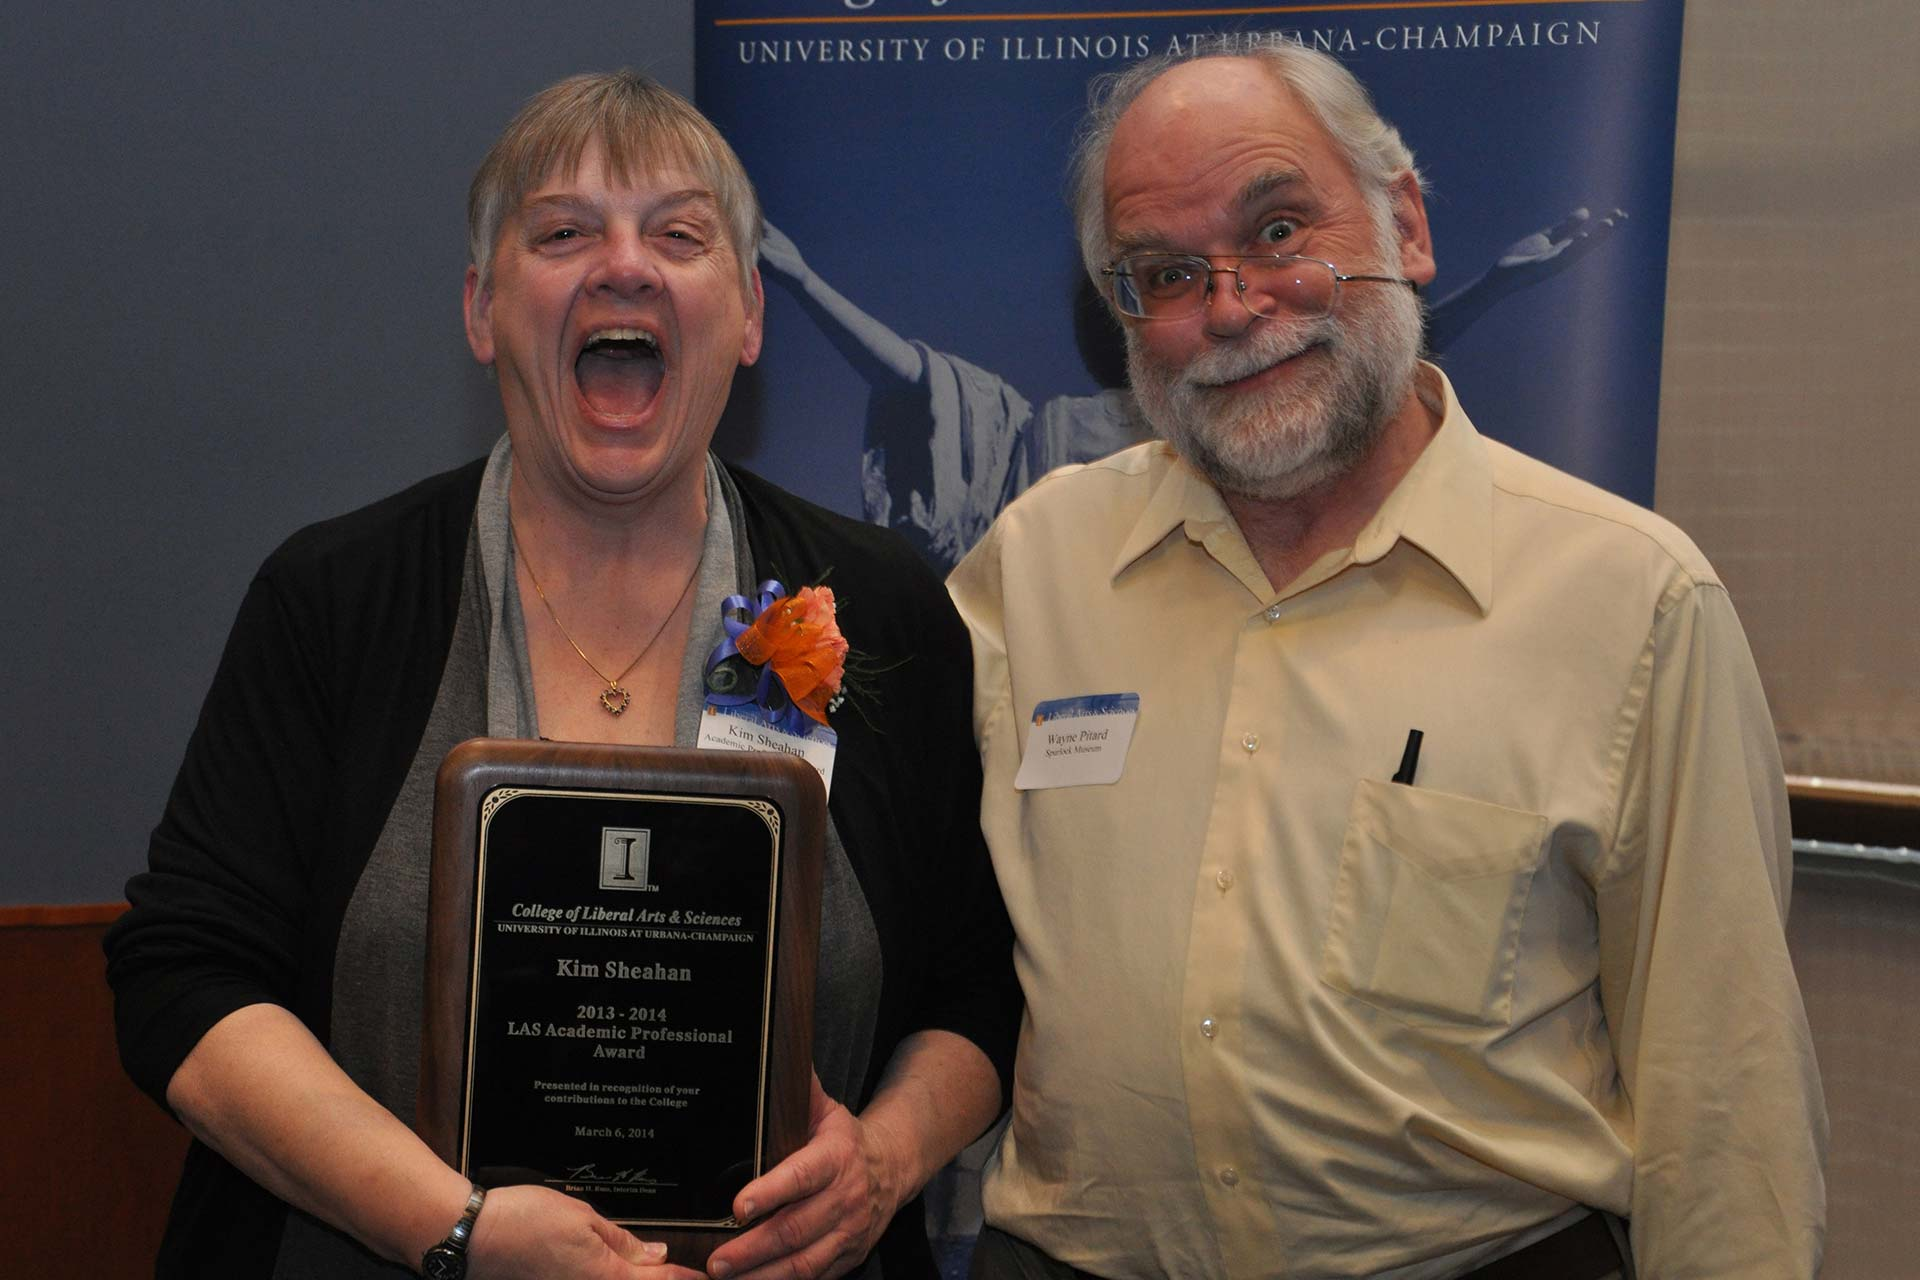 Wayne makes a crazy pose with laughing award winner Kim Sheahan